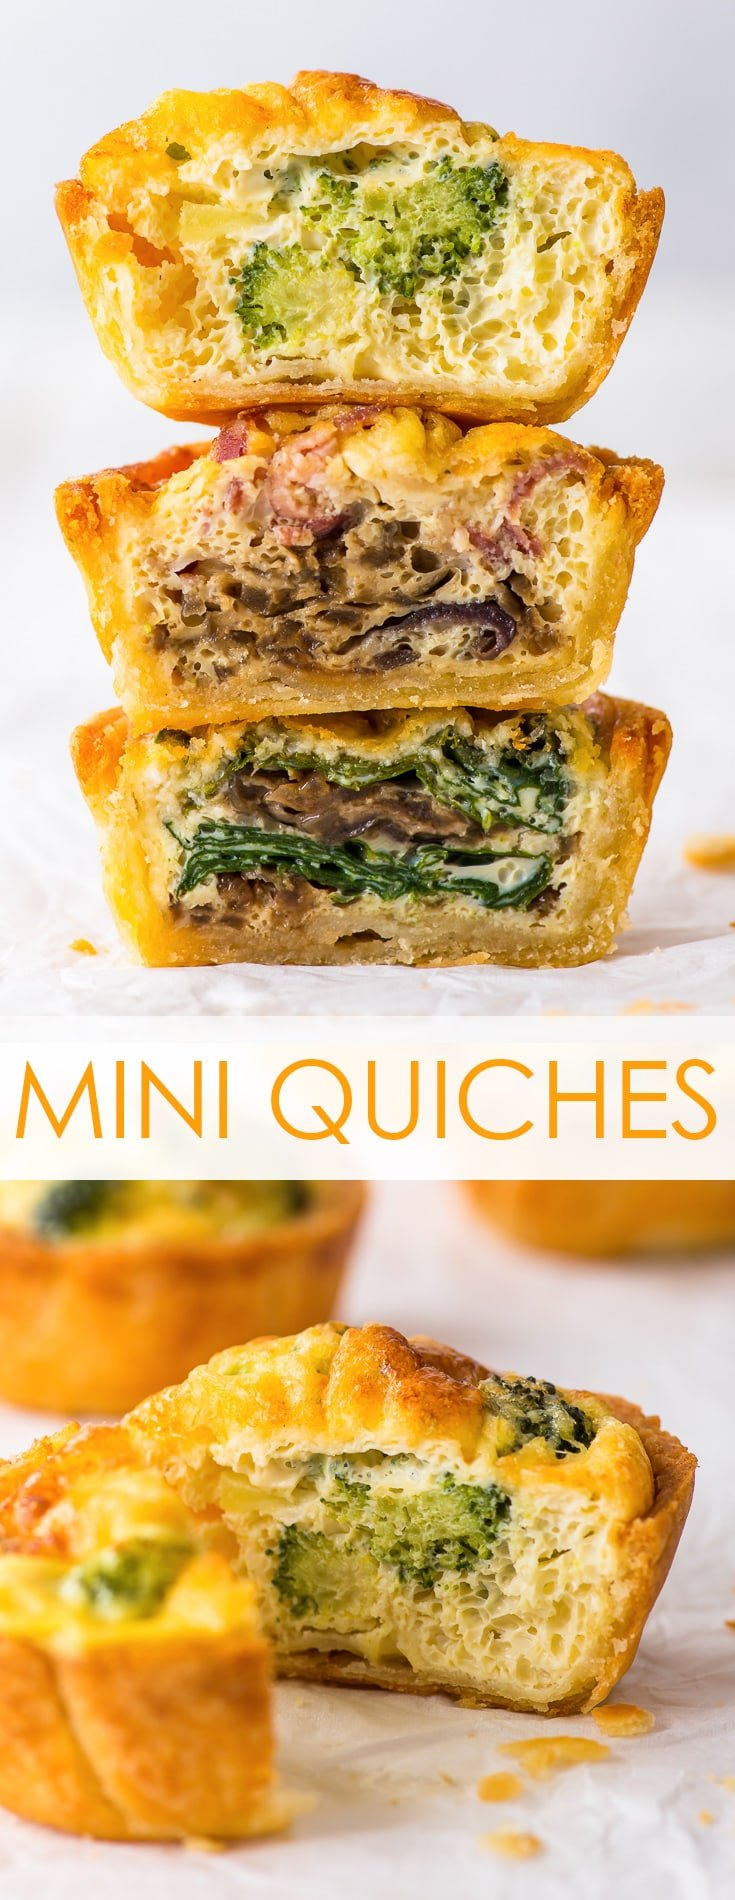 Easy Mini Quiches Recipe 3 Ways (Gluten Free) - These mini quiches are easy to make, incredibly convenient to have on hand as a quick snack or lunch, and simply to die for. With a buttery, flaky (gluten free) pie crust and a delicious selection of 3 fillings – each one better than the other! Healthy lunch recipes. Quiche recipes. Vegetarian quiche. Gluten free pie crust. Gluten free quiche. Gluten free lunch. Healthy snack ideas. Meal prep ideas. Meal prep recipes. #quiche #glutenfree